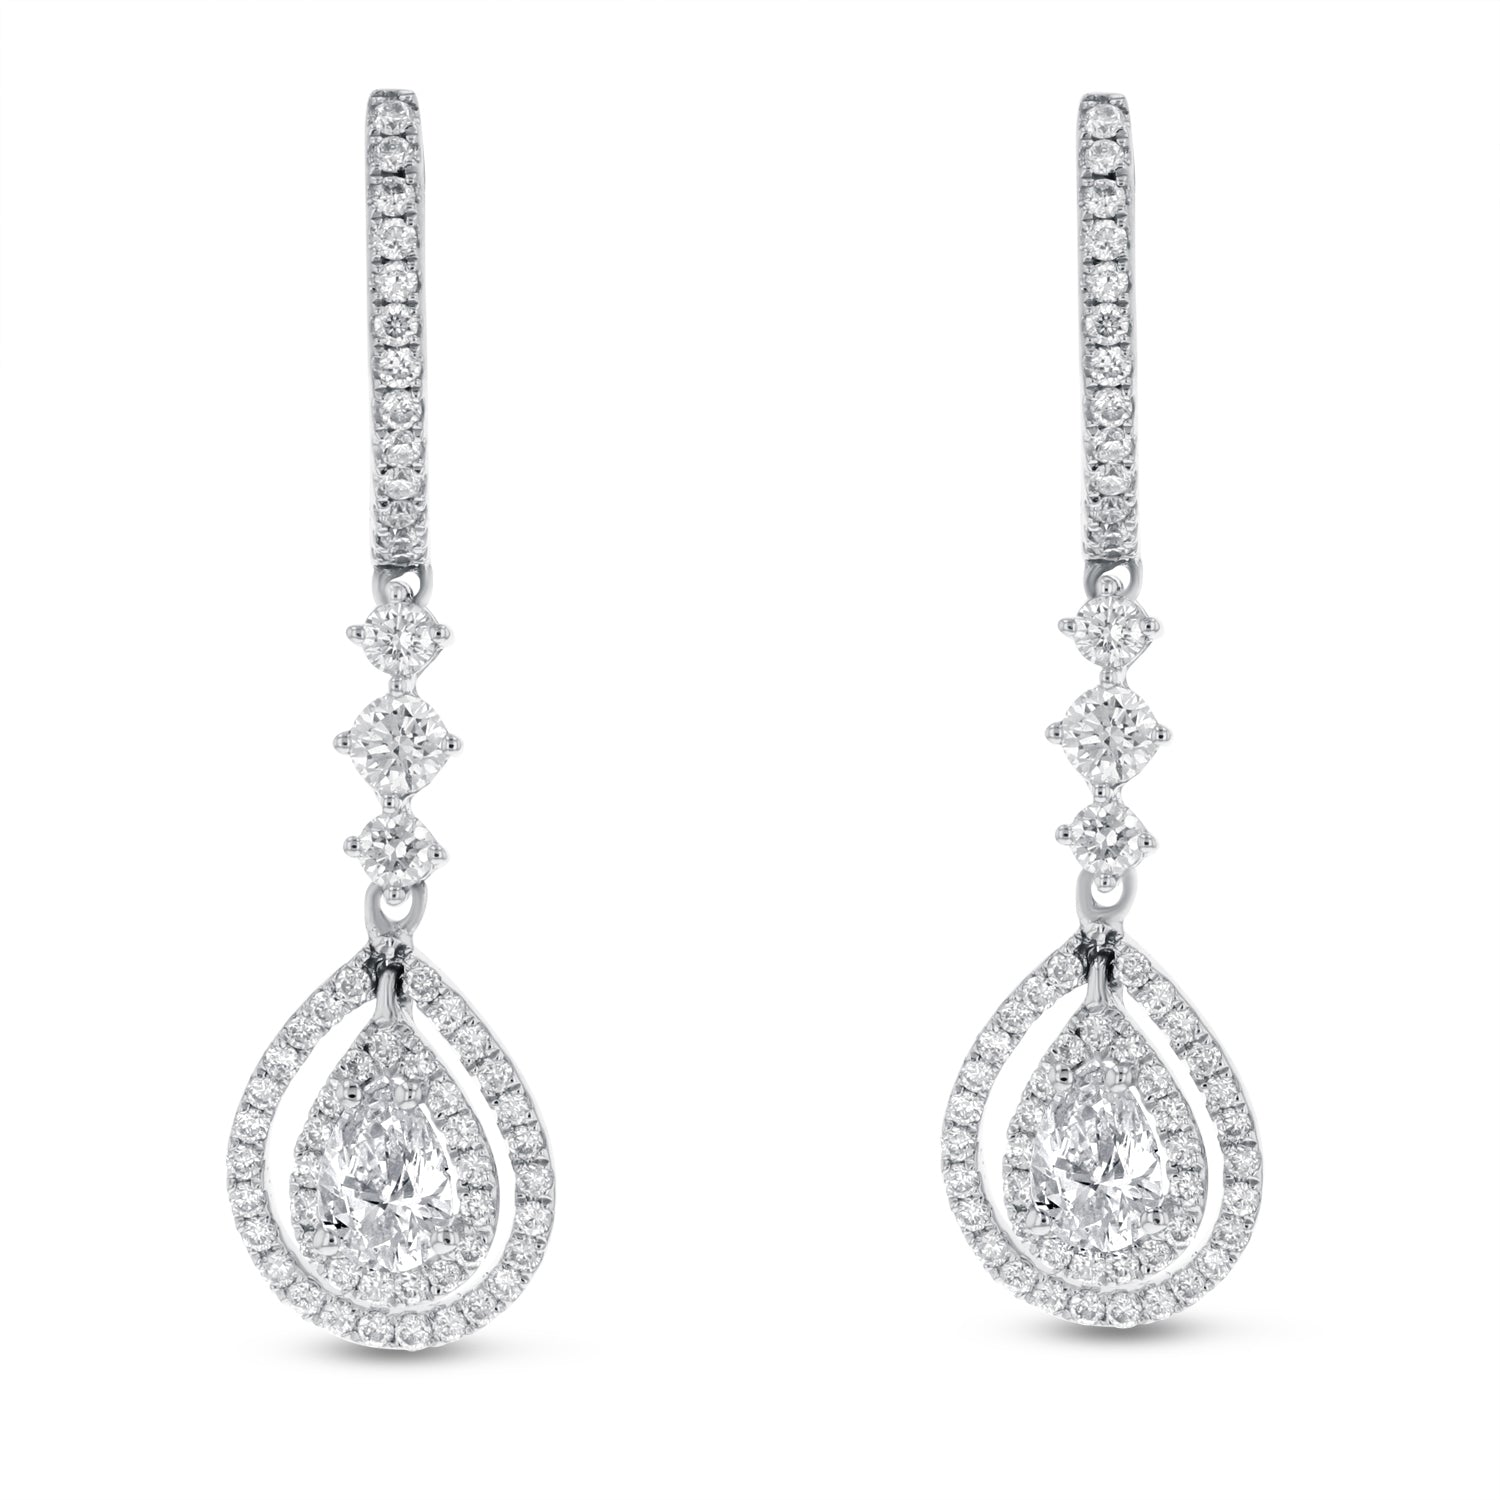 18K White Gold Diamond Earrings, 1.41 Carats